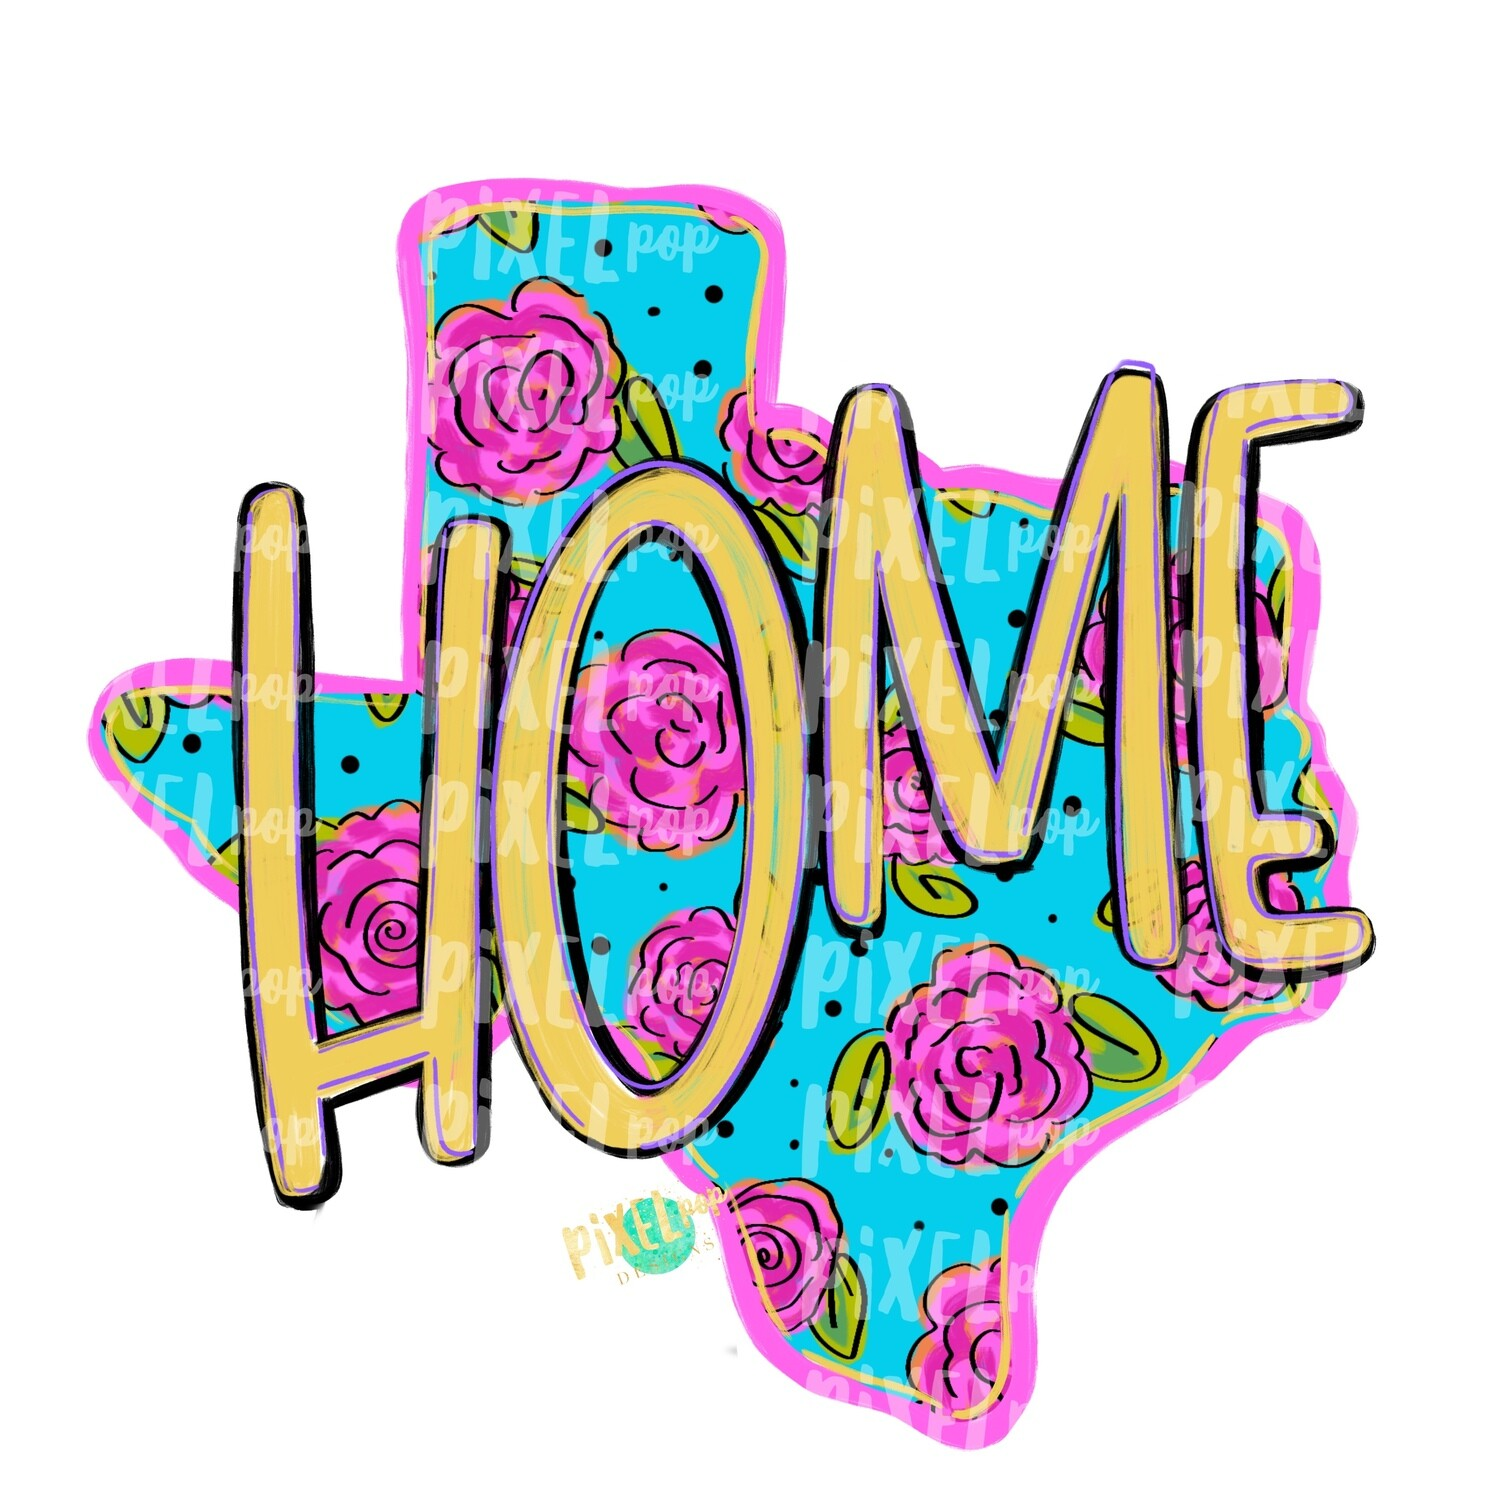 State of Texas Shape HOME Floral PNG | Texas | Home State | Sublimation Design | Heat Transfer | Digital | Flower Background